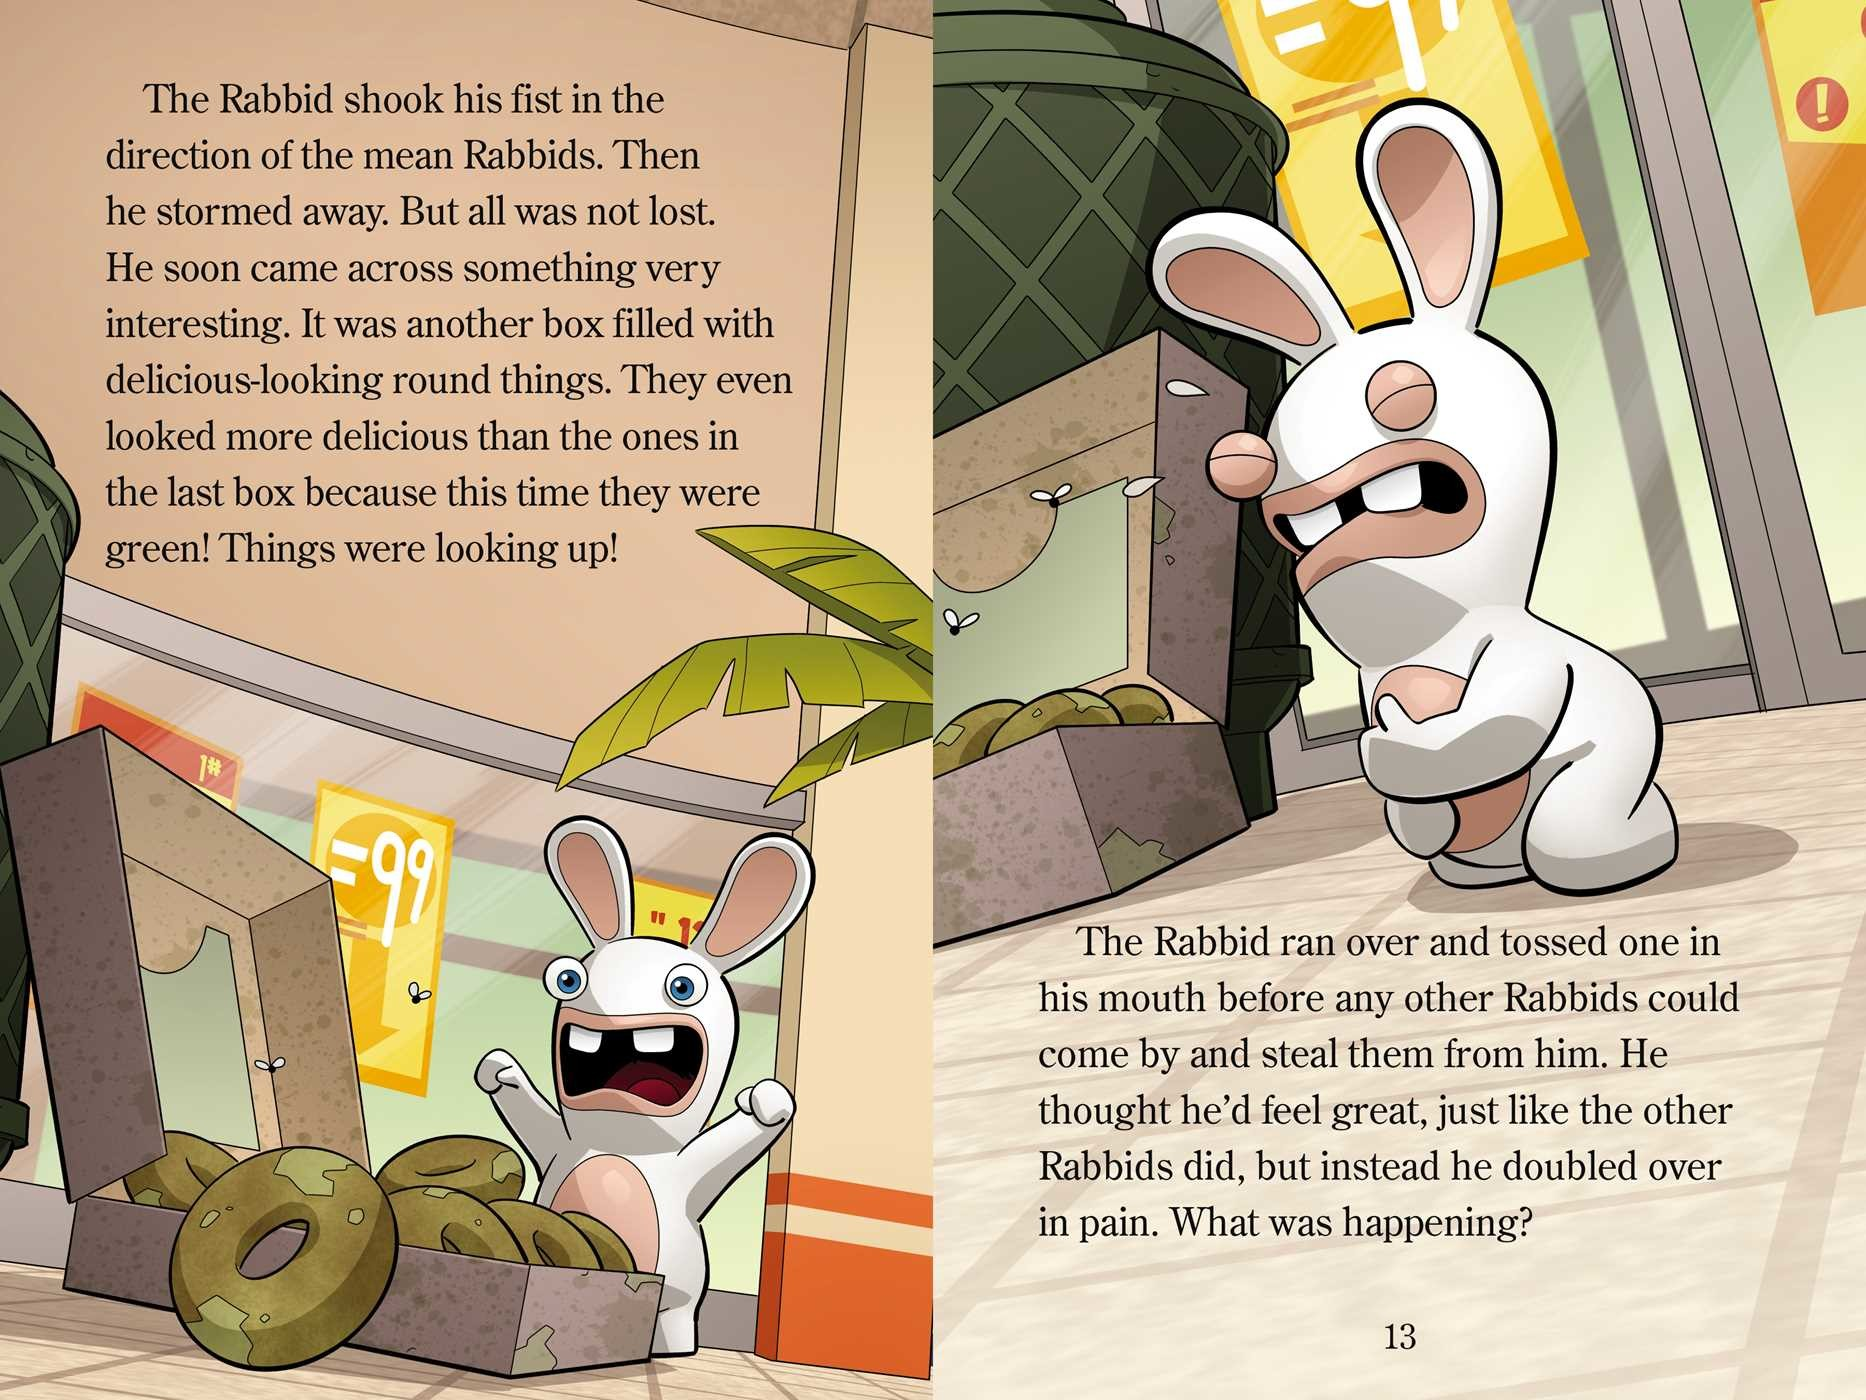 Attack of the zombie rabbids 9781481460668.in04